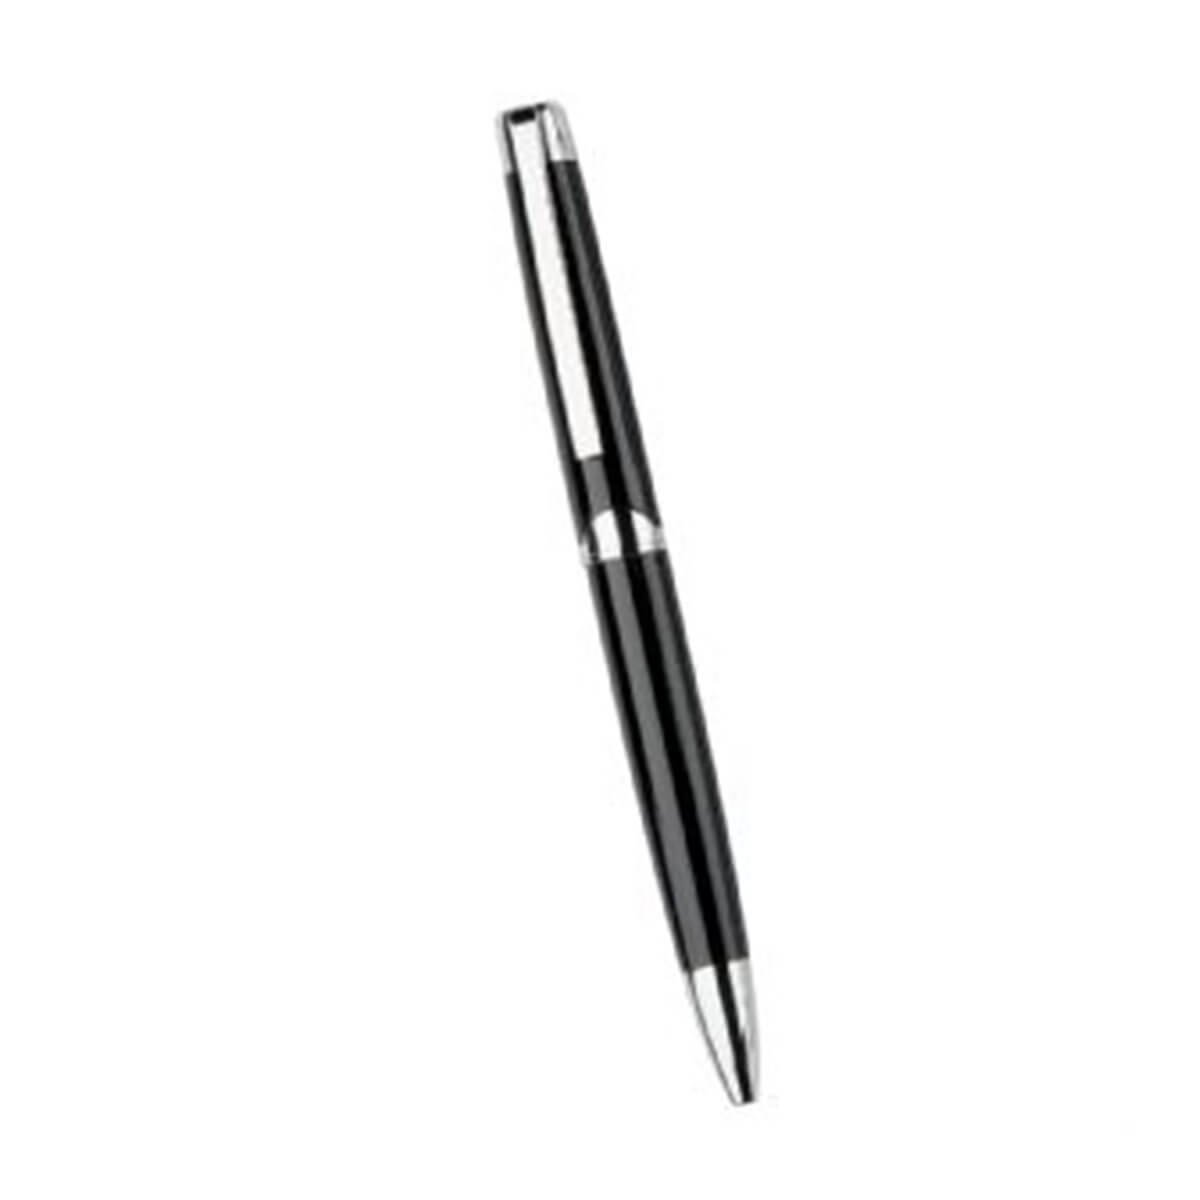 Berlin Twist Action Metal Ball Pen-Black.